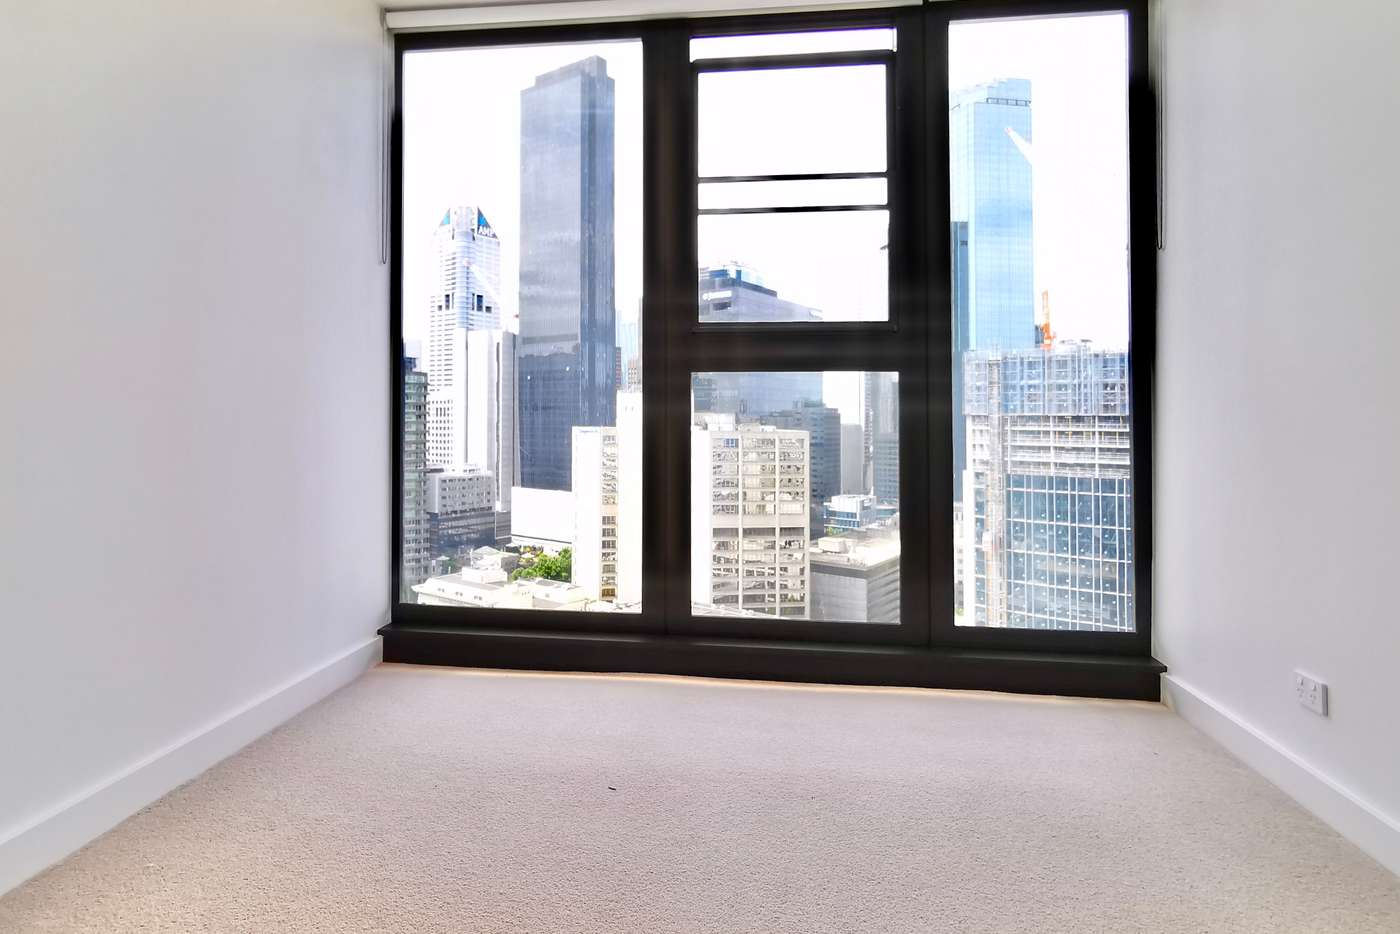 Sixth view of Homely apartment listing, 2102/628 Flinders Street, Docklands VIC 3008